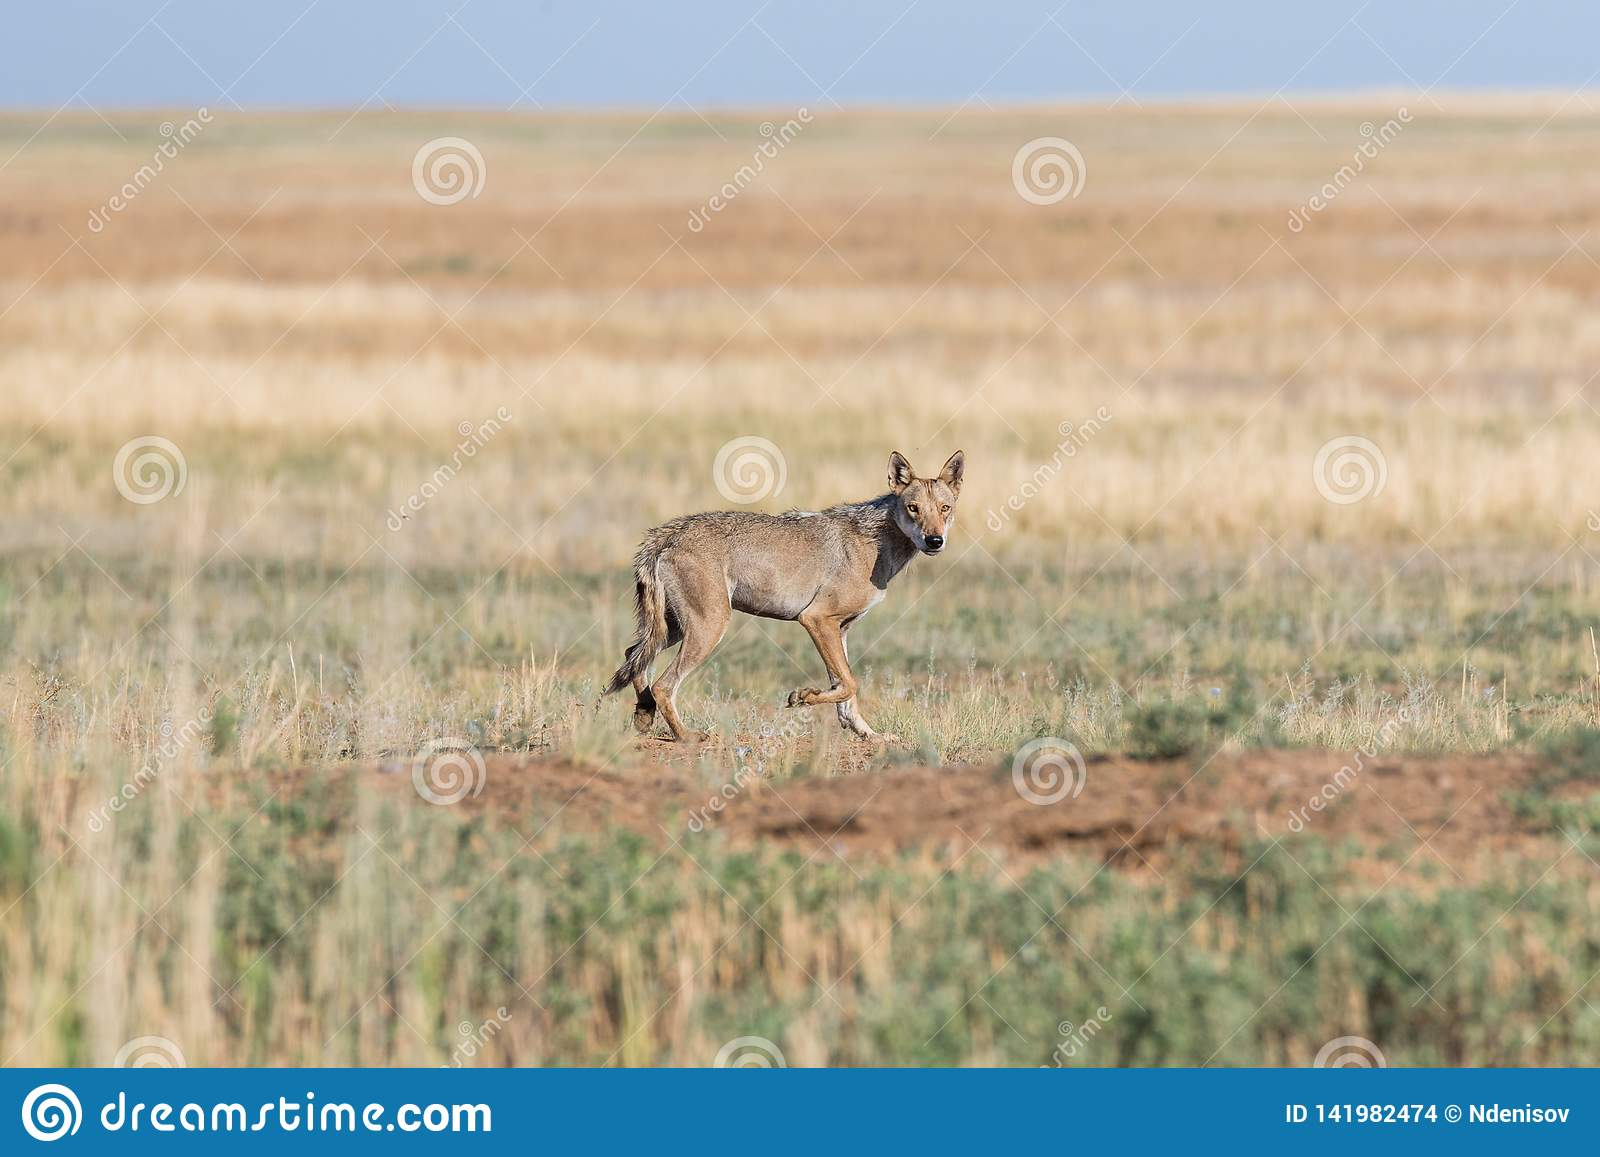 Wet Gray wolf Canis lupus runs across the field.